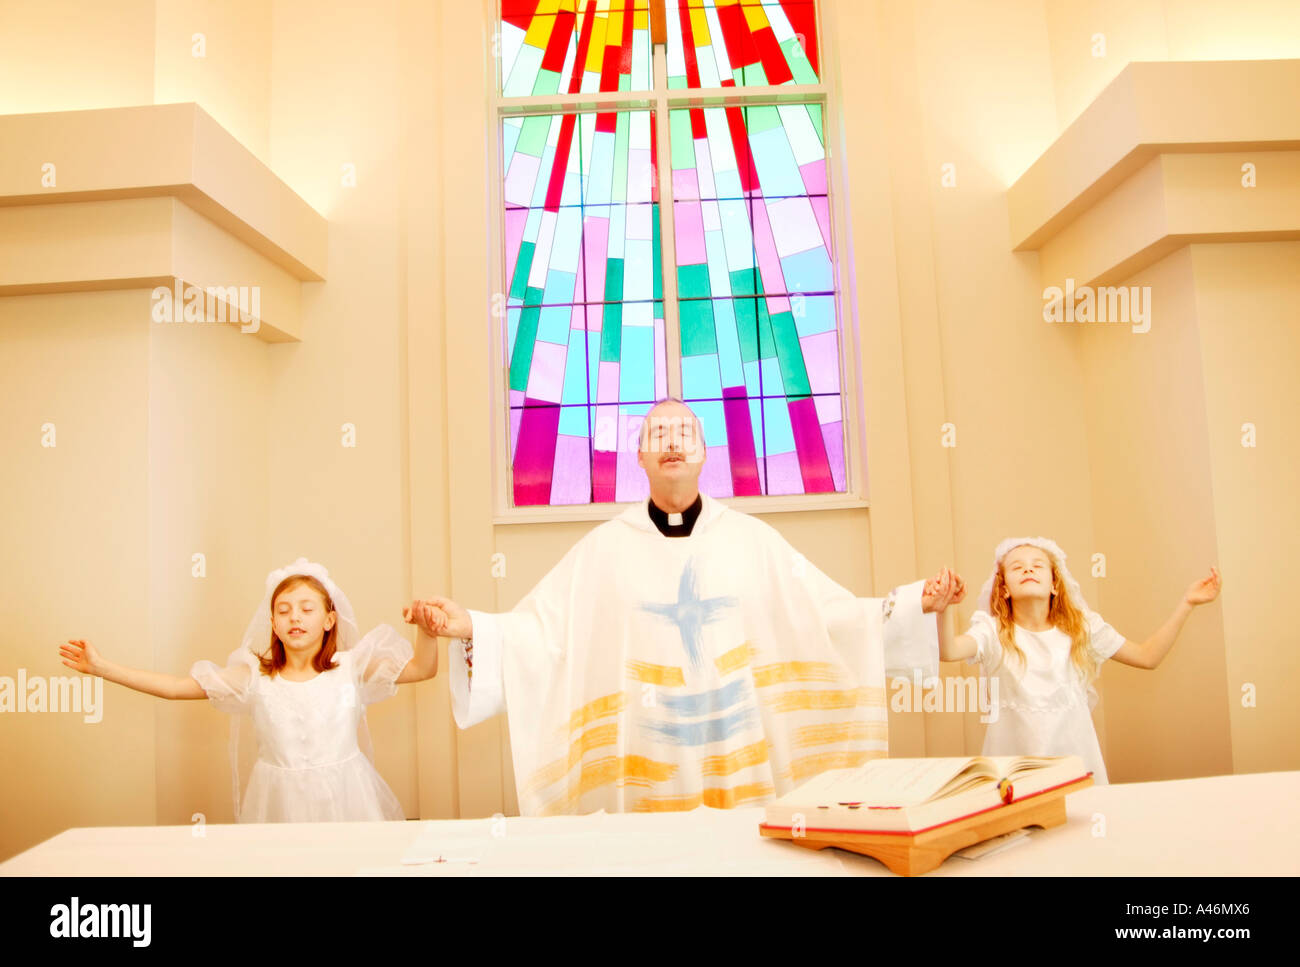 Priest with girls on first communion - Stock Image